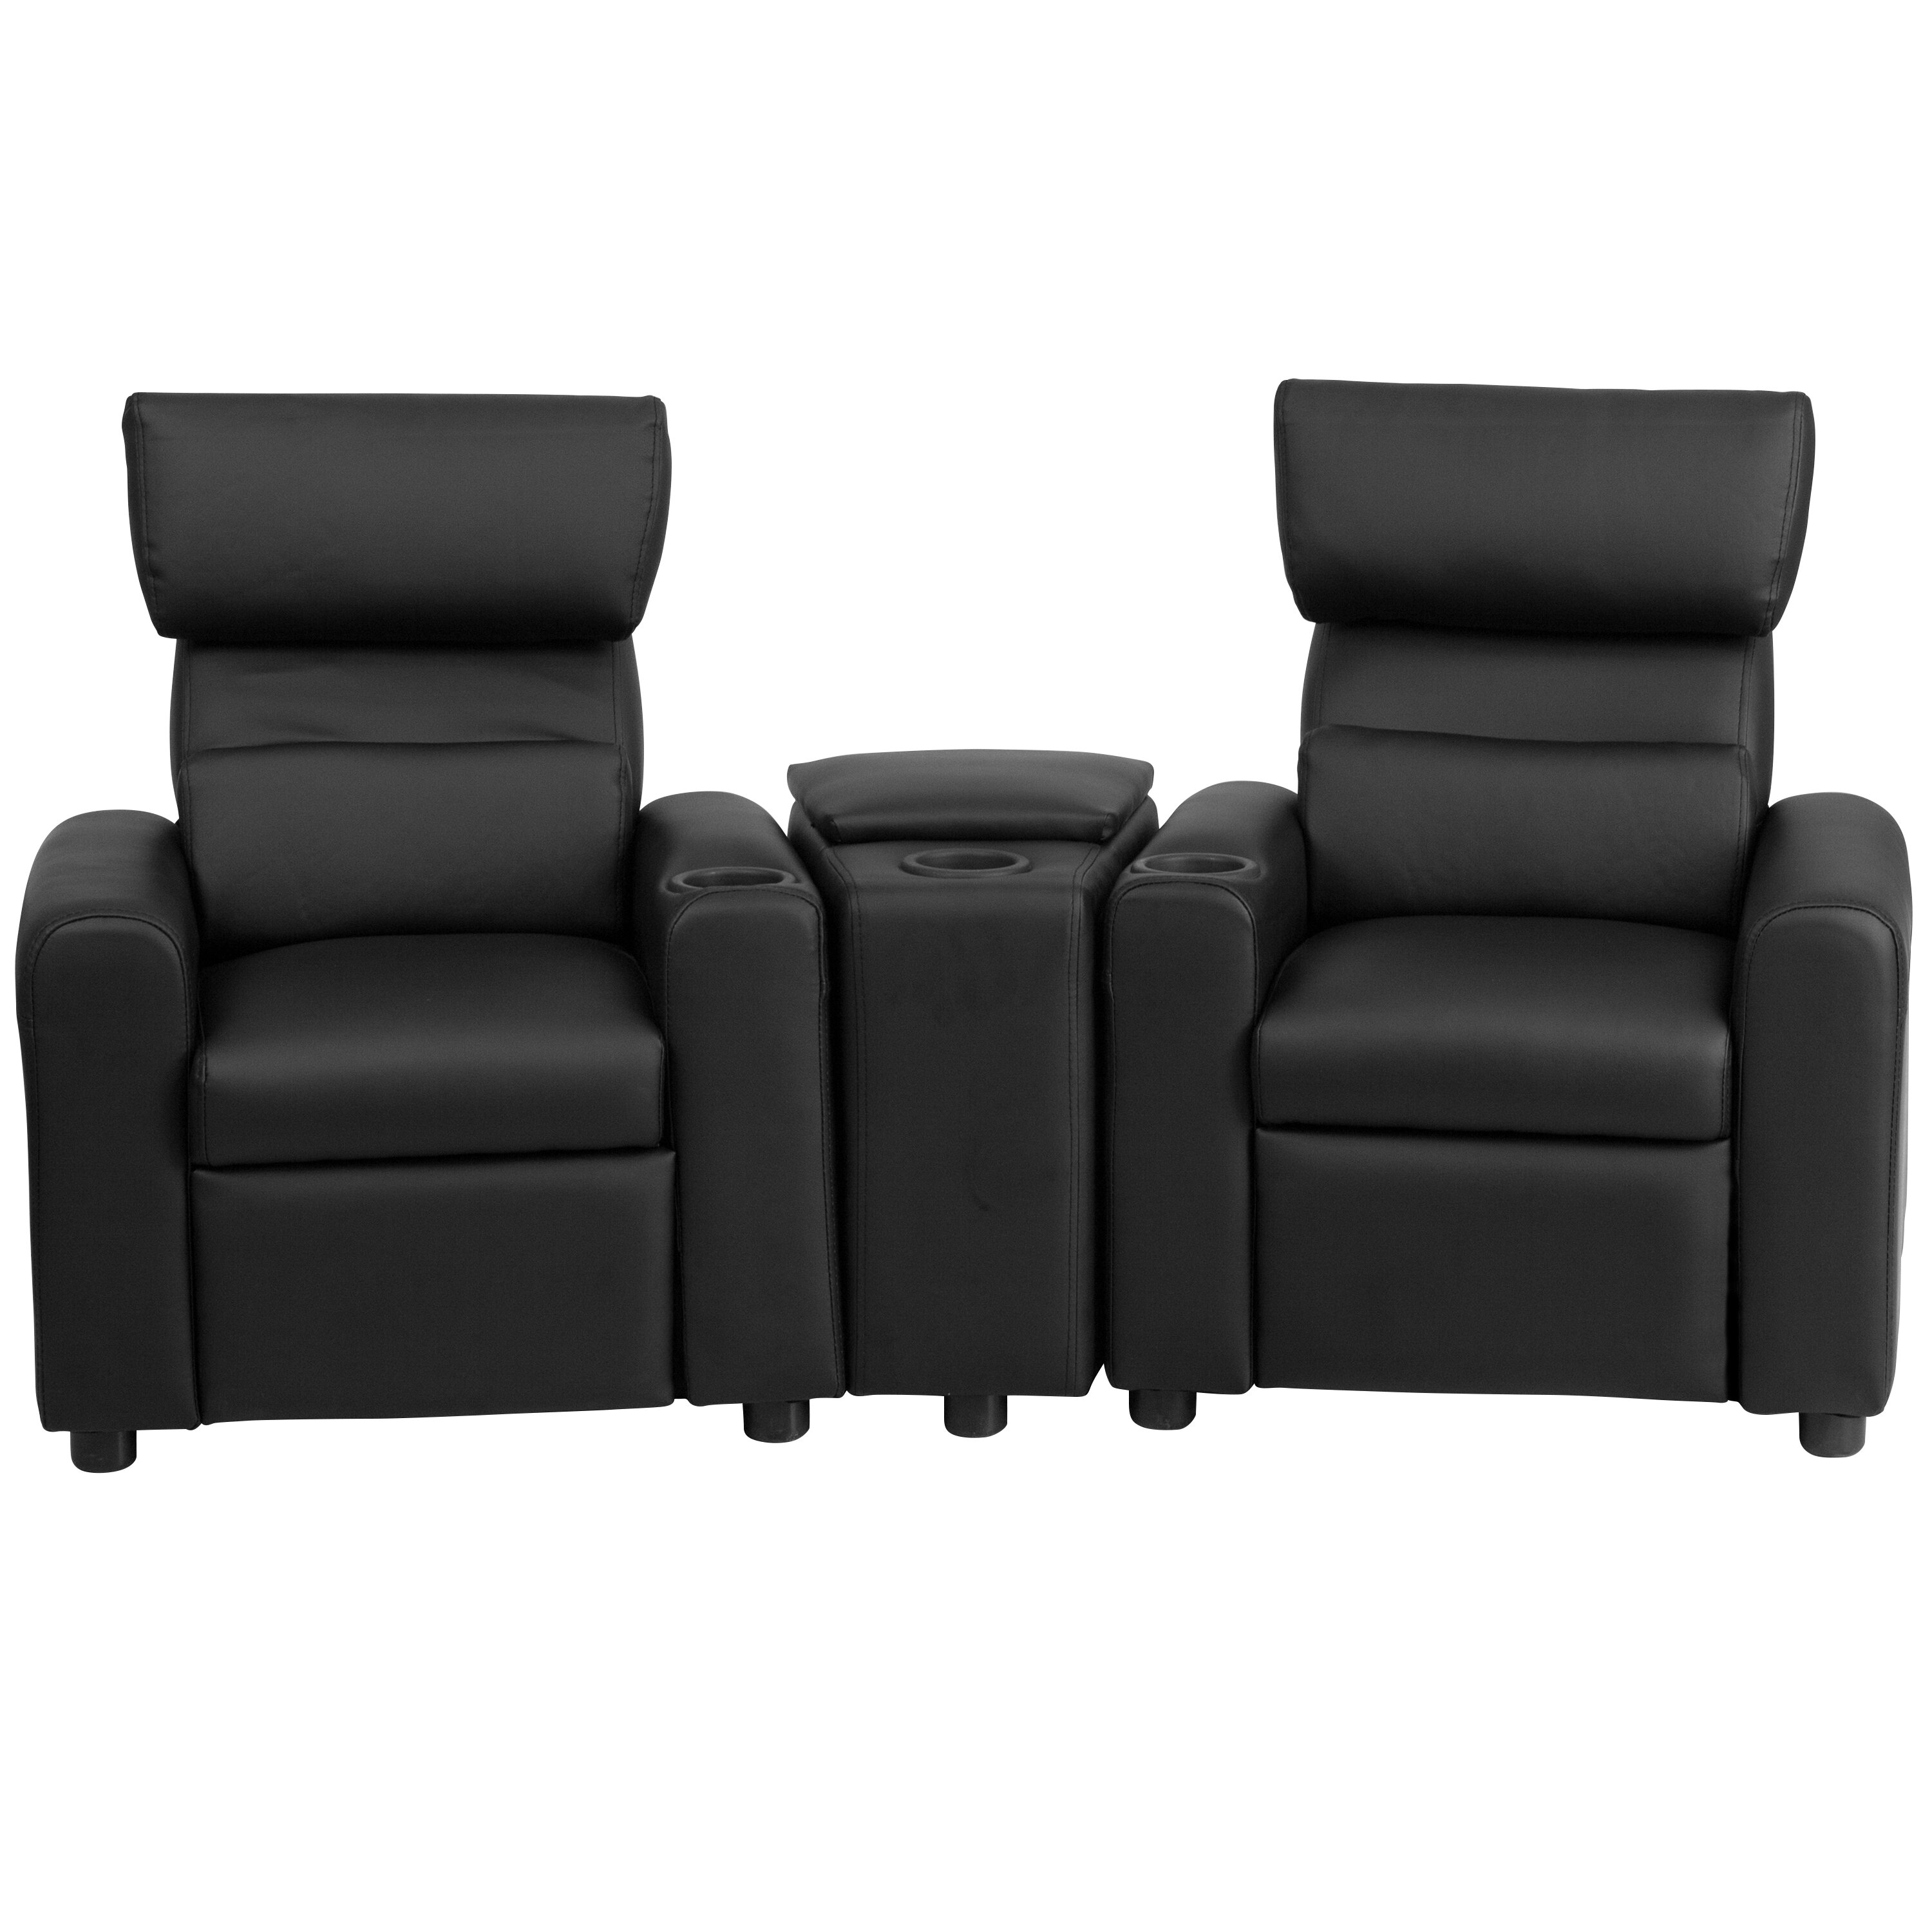 Flash furniture kids leather recliner with storage compartment and cup